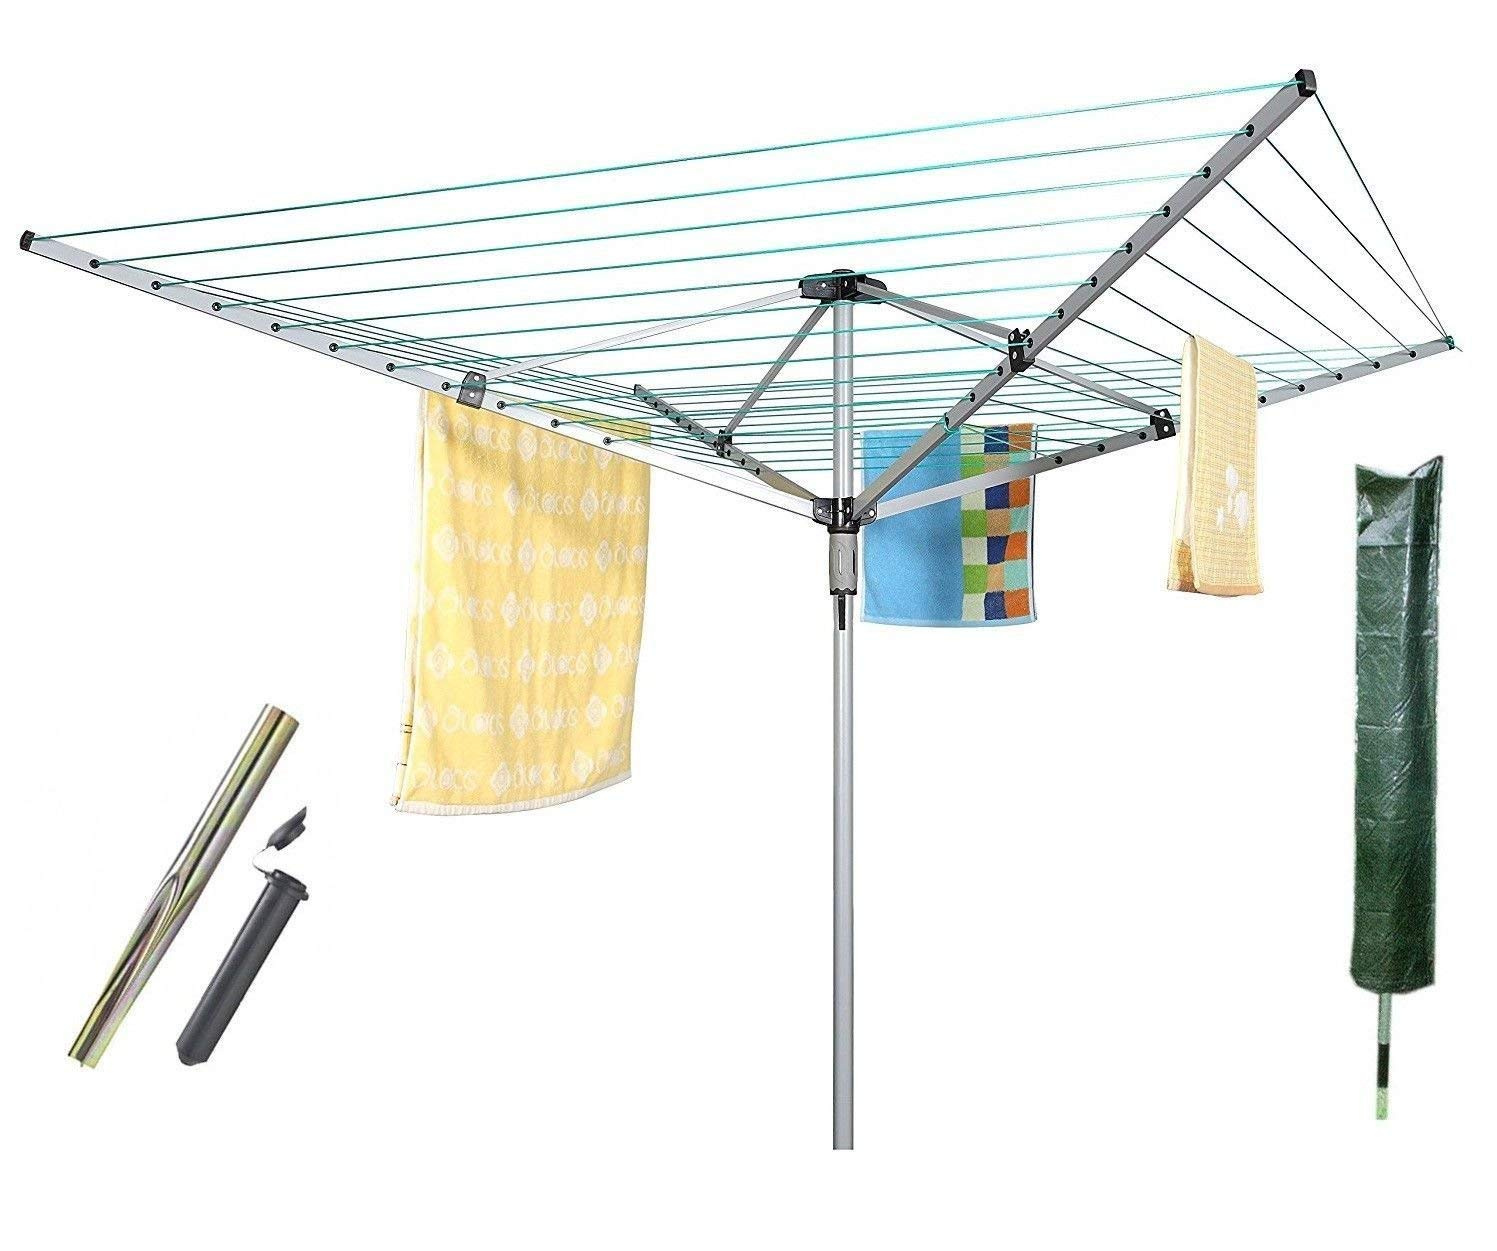 Poundstretcher rotary washing line electrical extension leads with switches